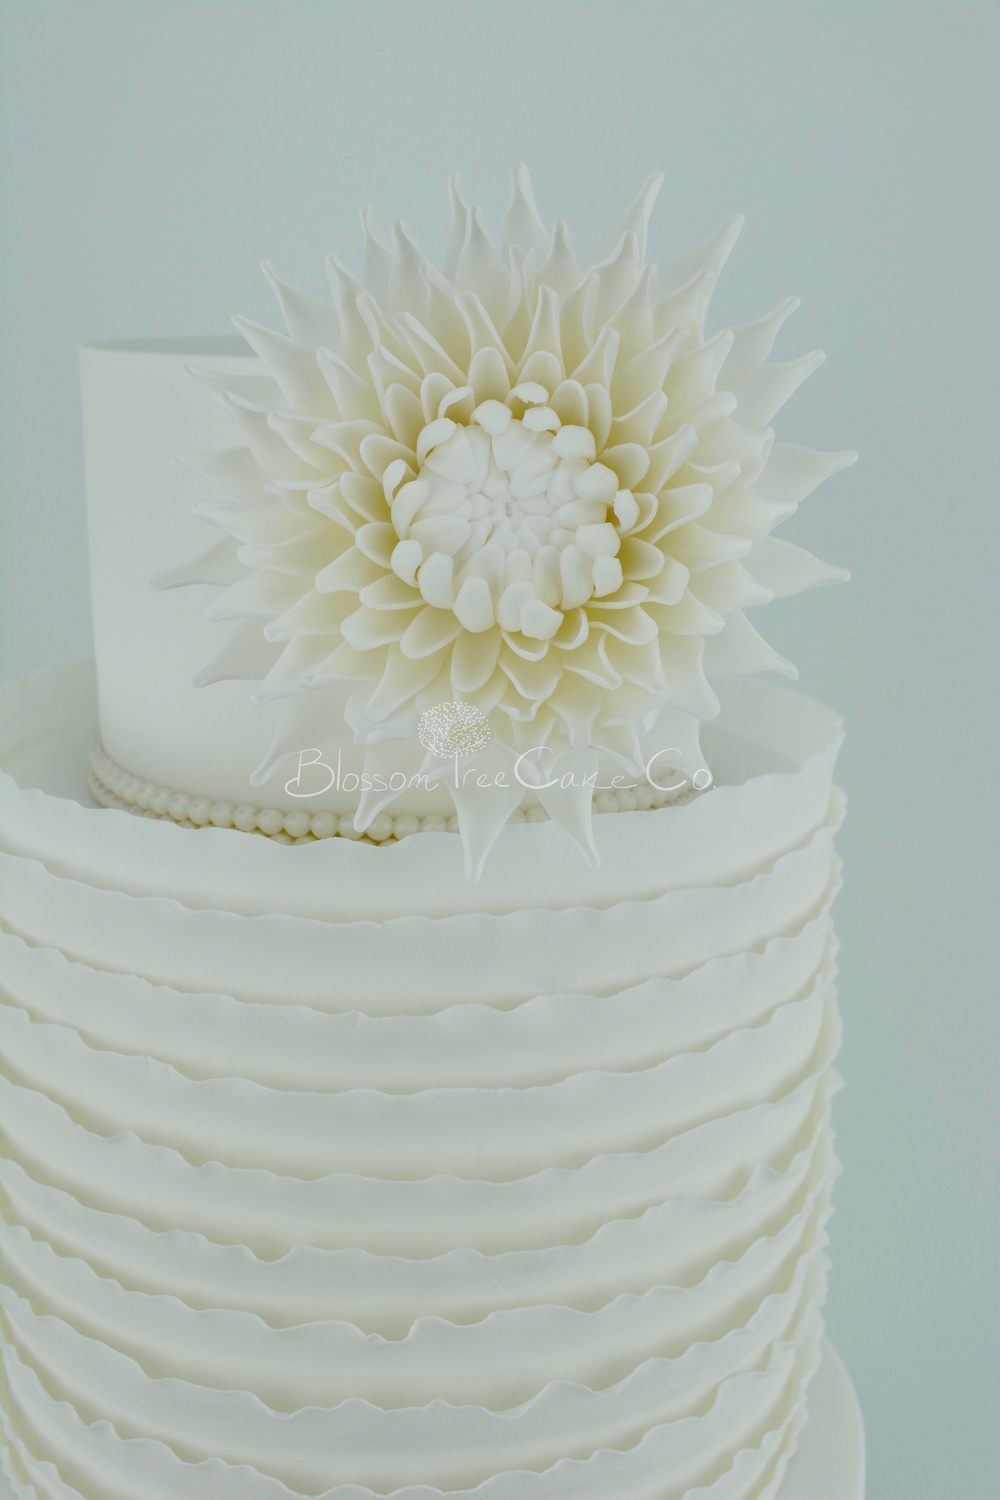 White Ruffle with White Dahlia wedding cake by Blossom Tree Cake Co Harrogate North Yorkshire detail 2.jpg